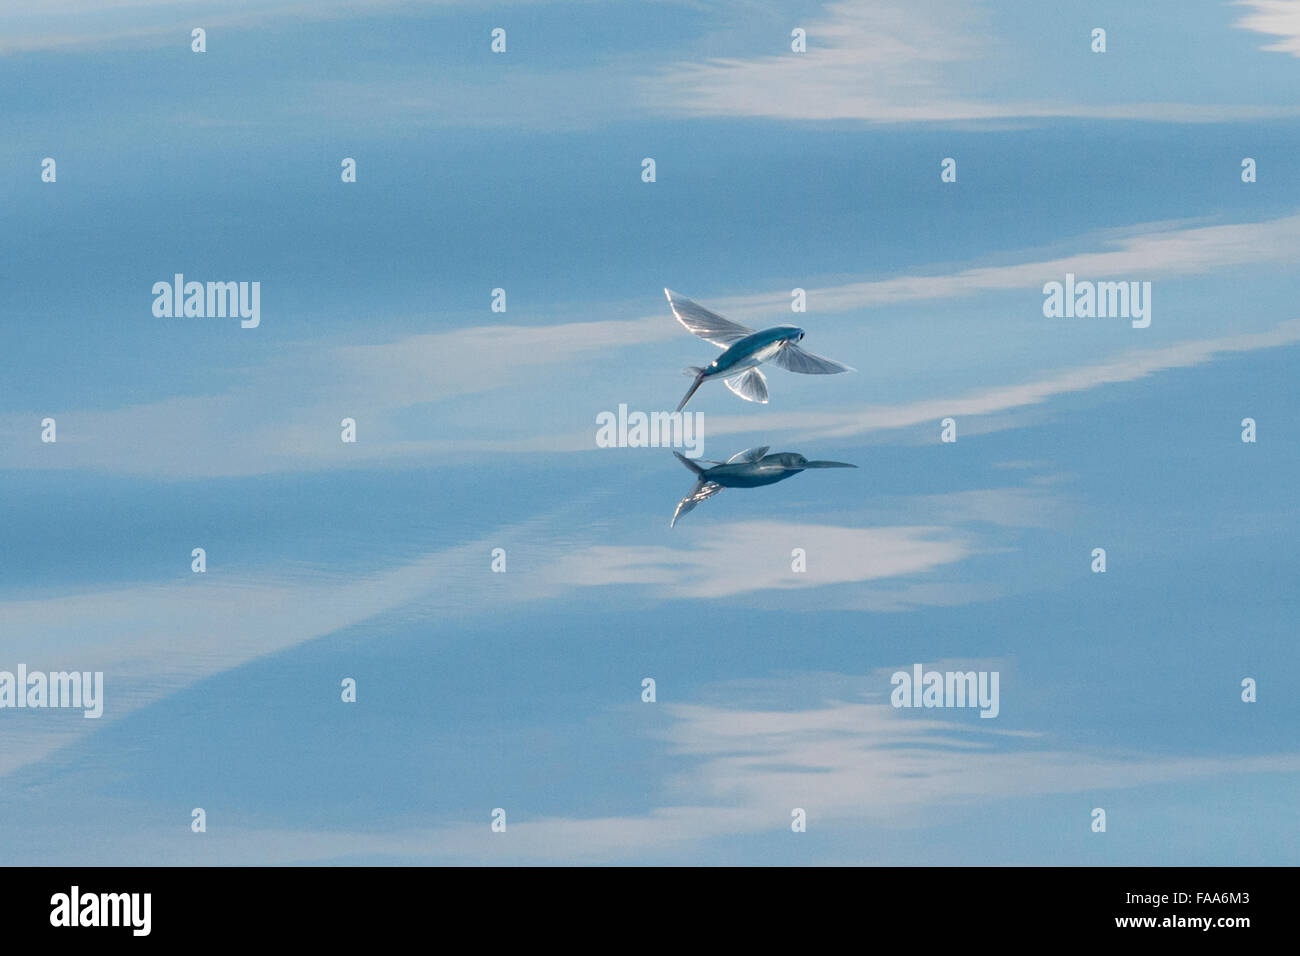 Flying Fish Species (scientific name unknown) with reflection visible, Maldives, Indian Ocean. Stock Photo